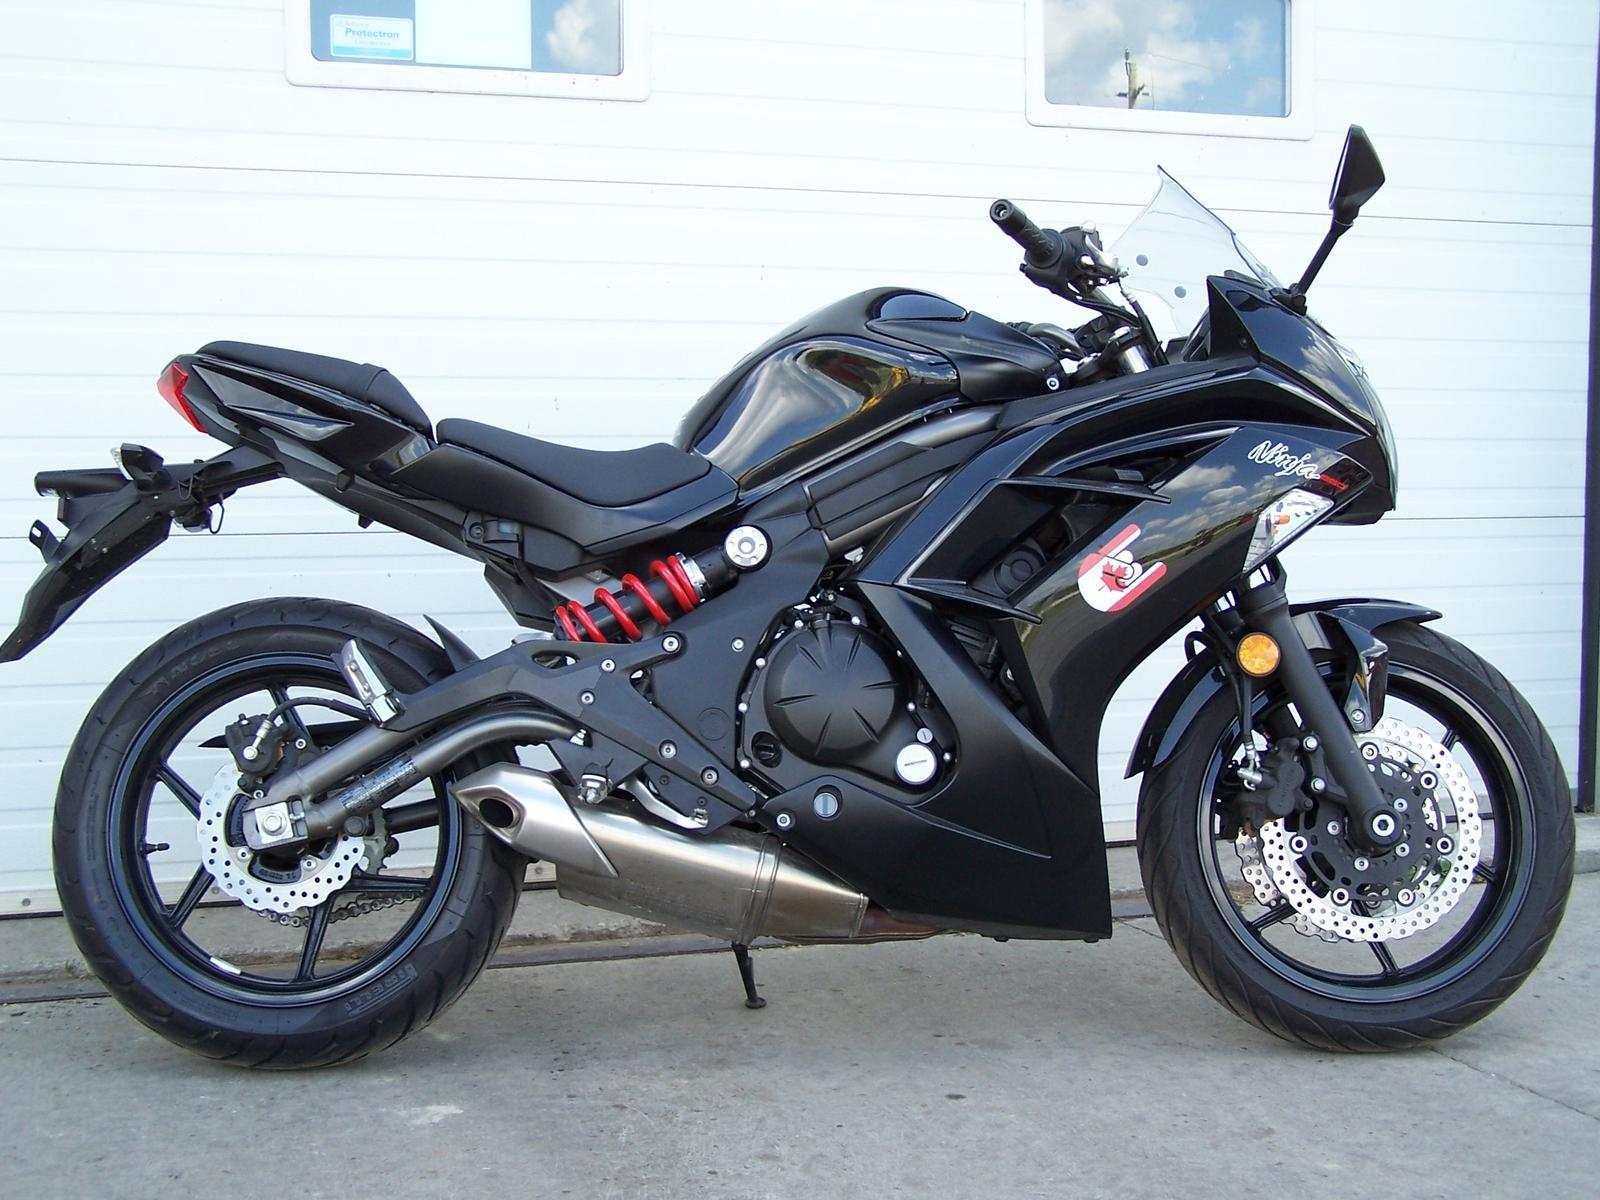 2012 Kawasaki Ninja 650 for sale in Mitchell, ON. Wighty's Repairs ...